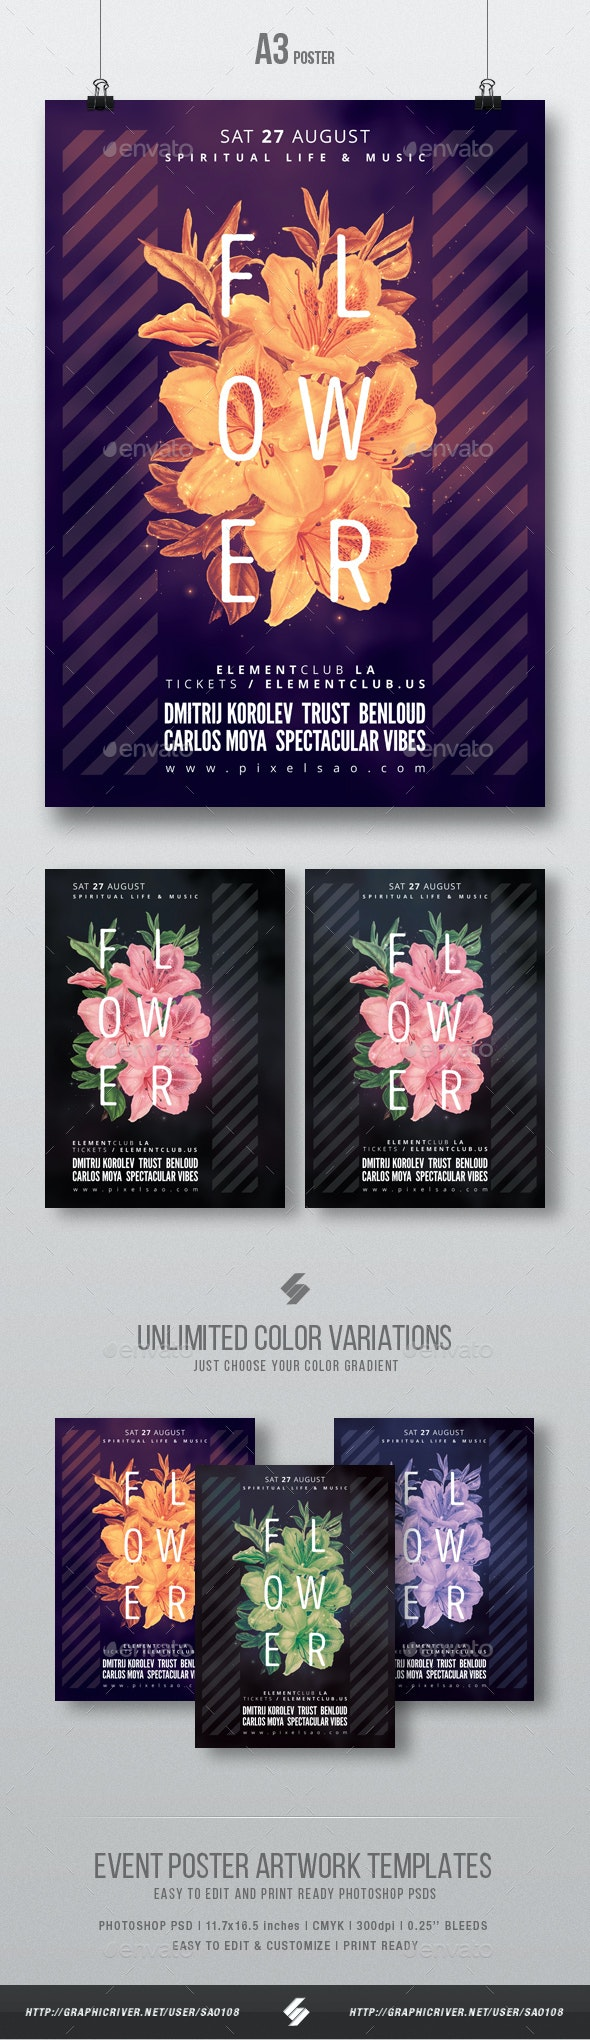 Progressive Flowers - Party Flyer / Poster Template A3 - Clubs & Parties Events